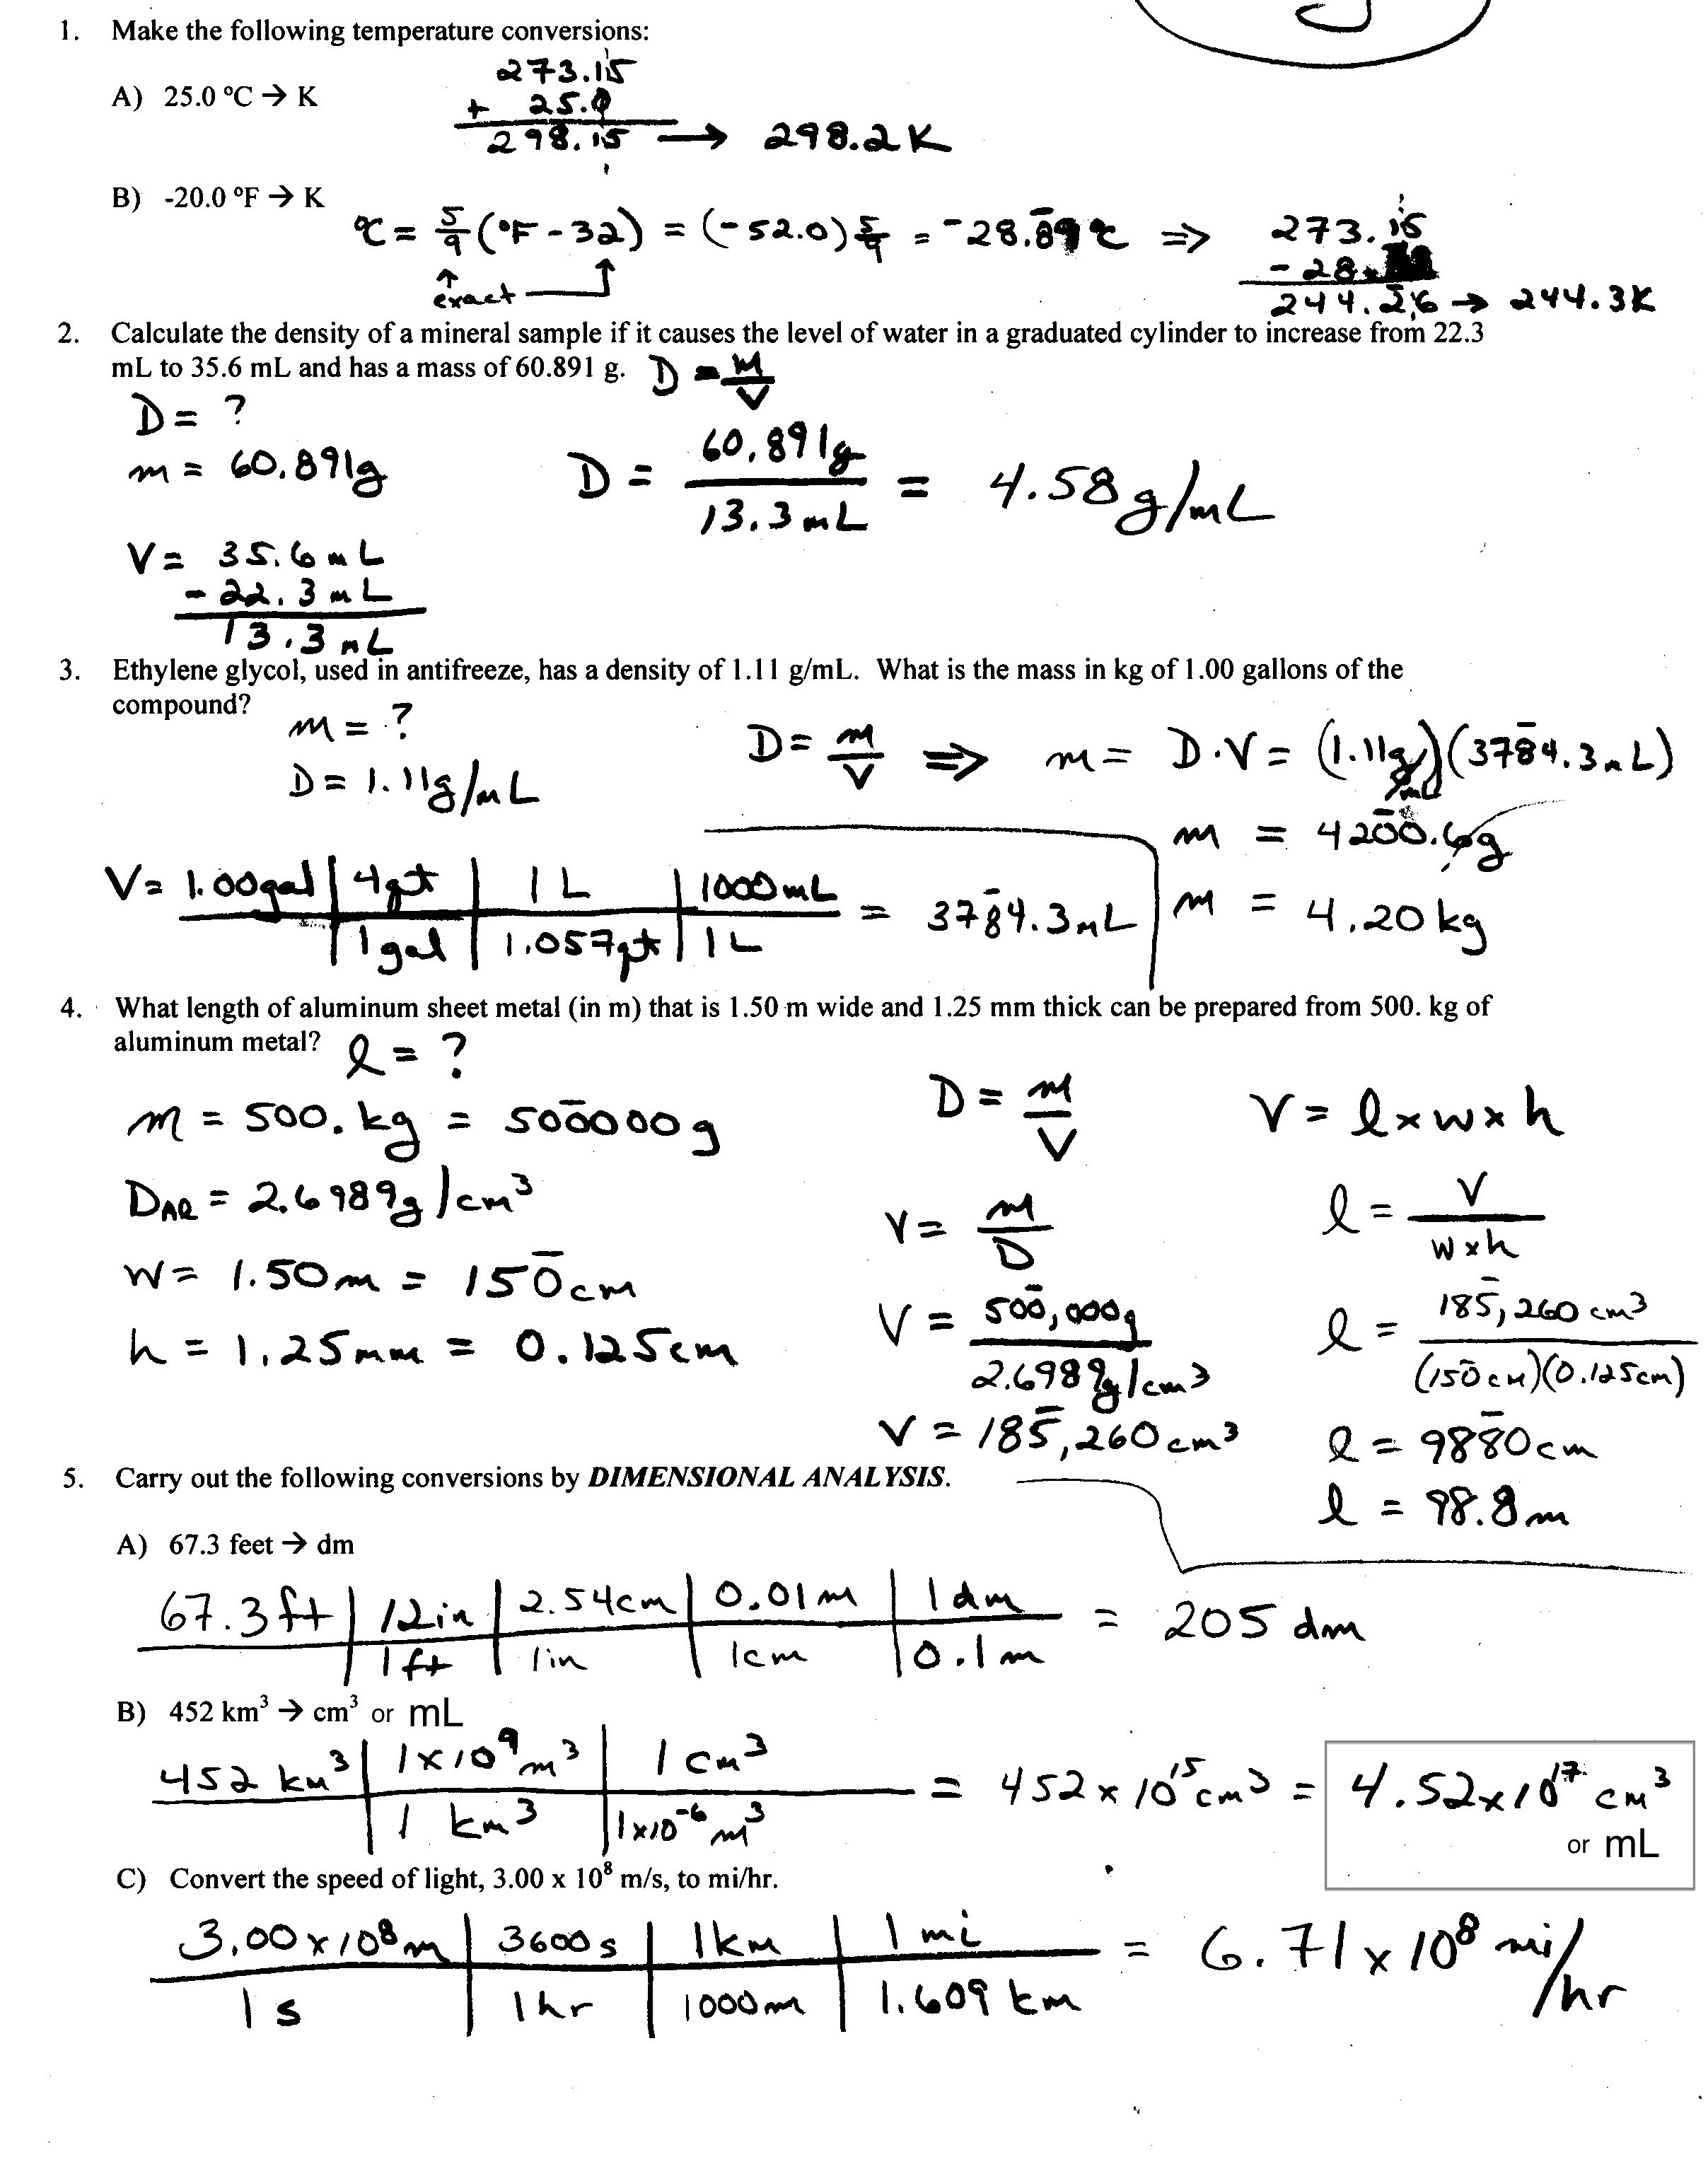 CHEM 192 Lecture – Dimensional Analysis Problems Worksheet